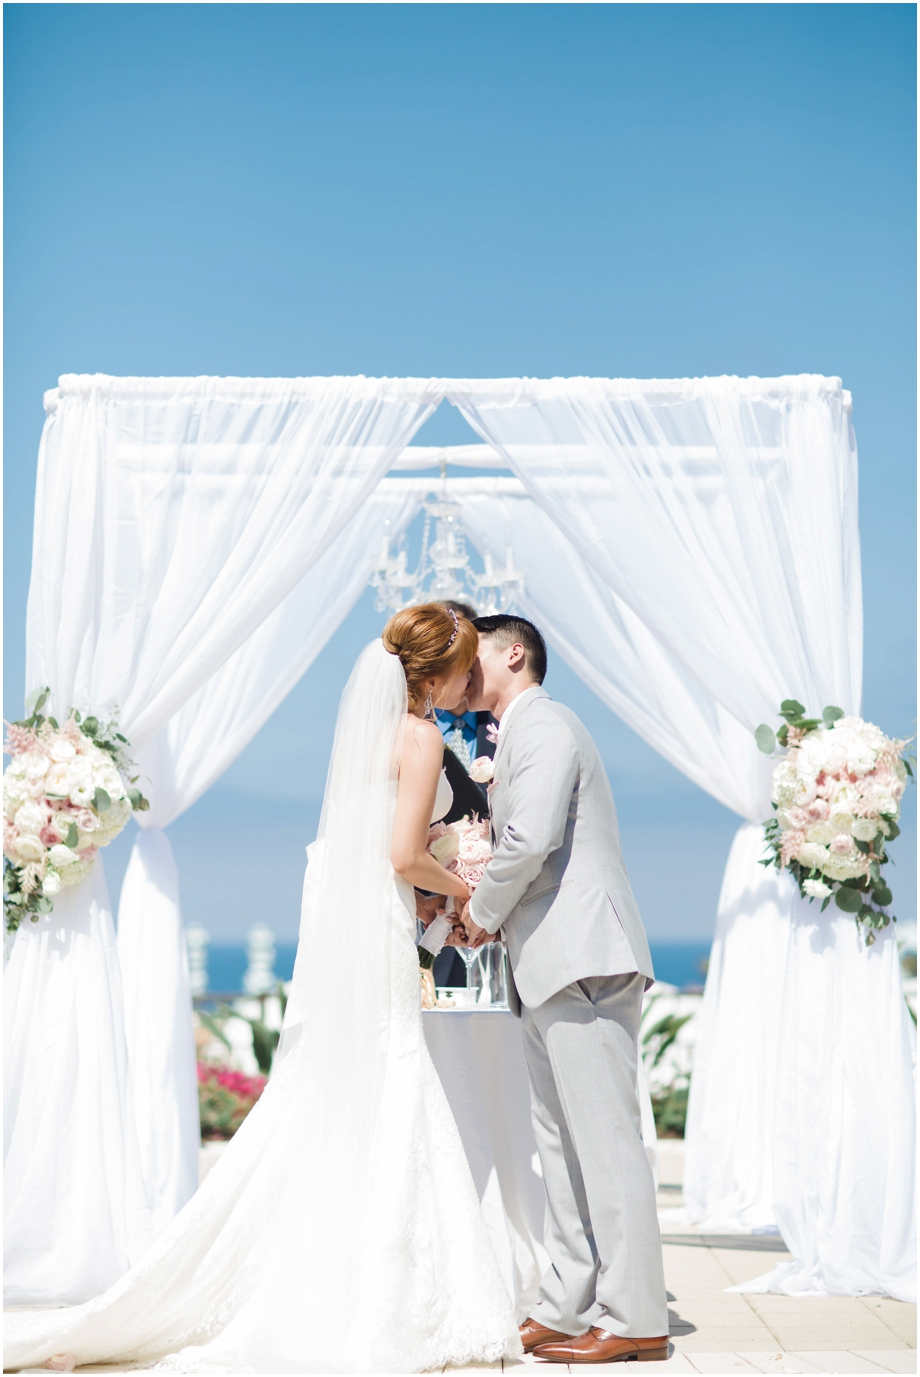 First Kiss at Monarch Beach Dana Point Wedding